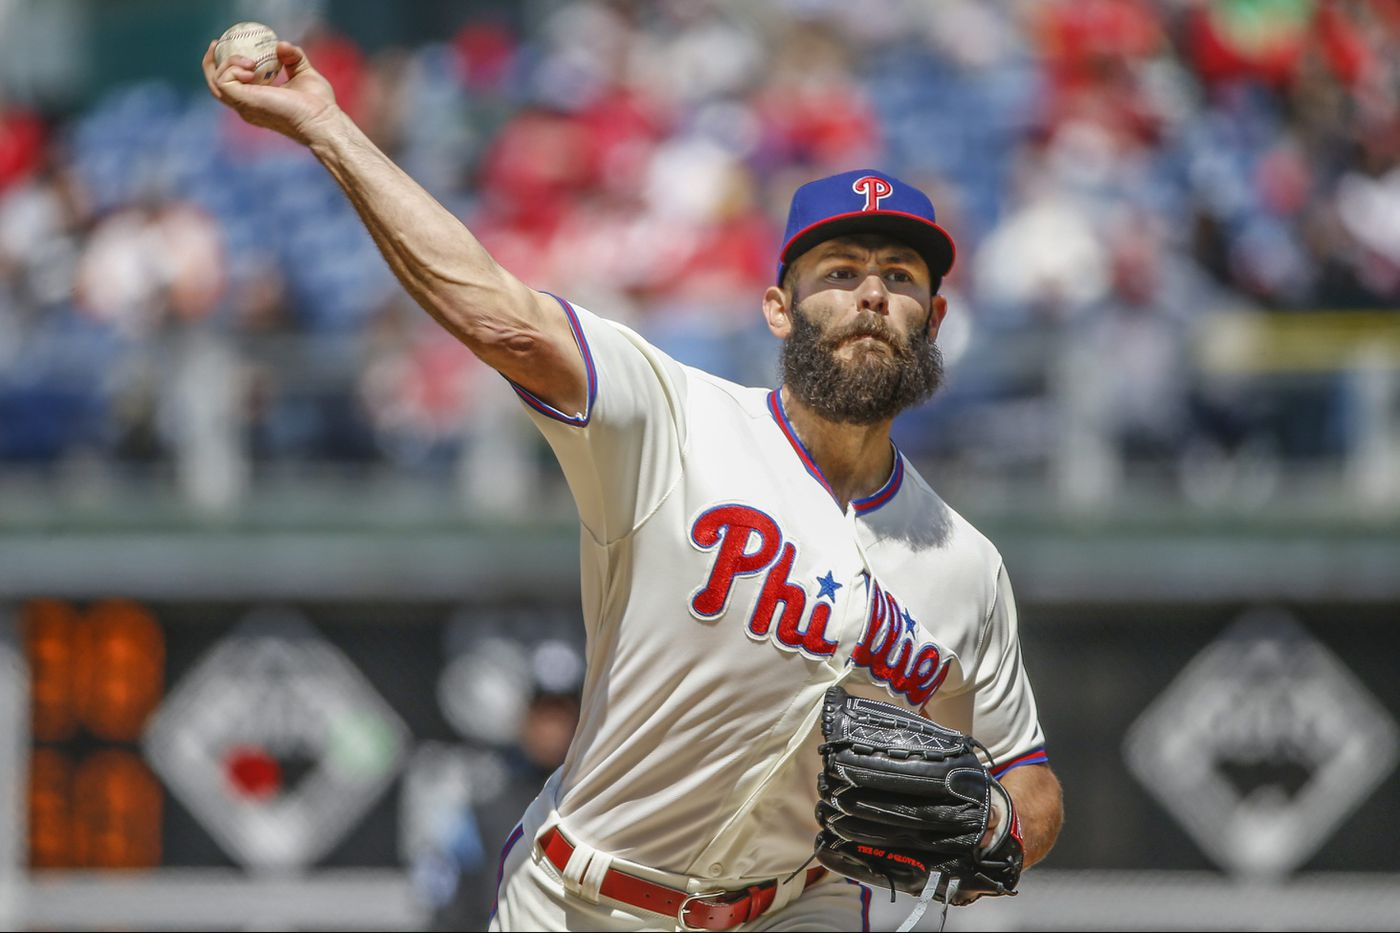 Phillies have great chance to end first half with a sweep | Extra Innings